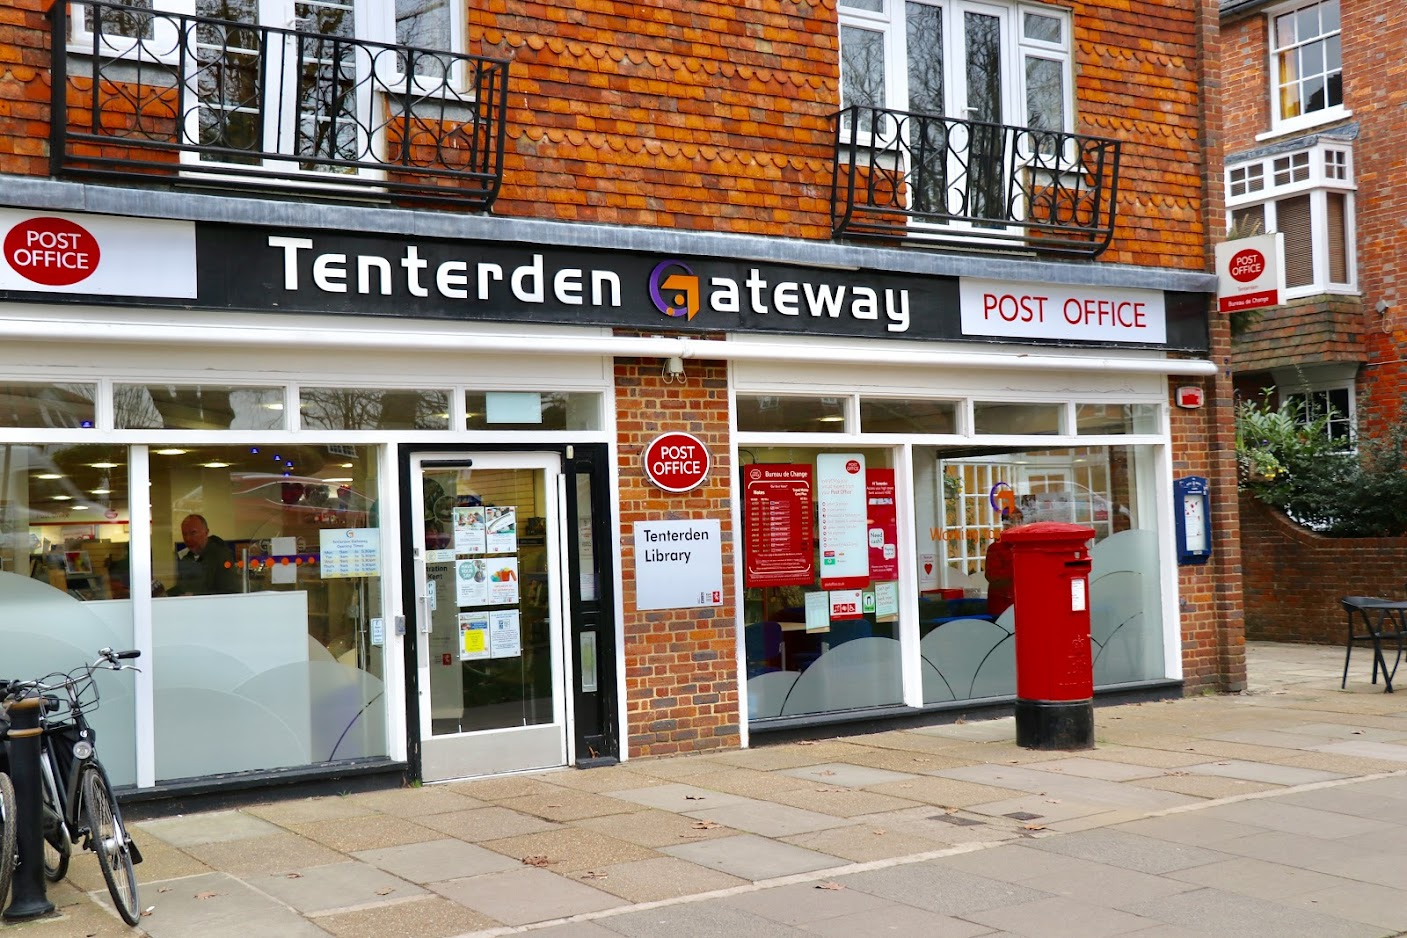 Tenterden Gateway and Tenterden Library